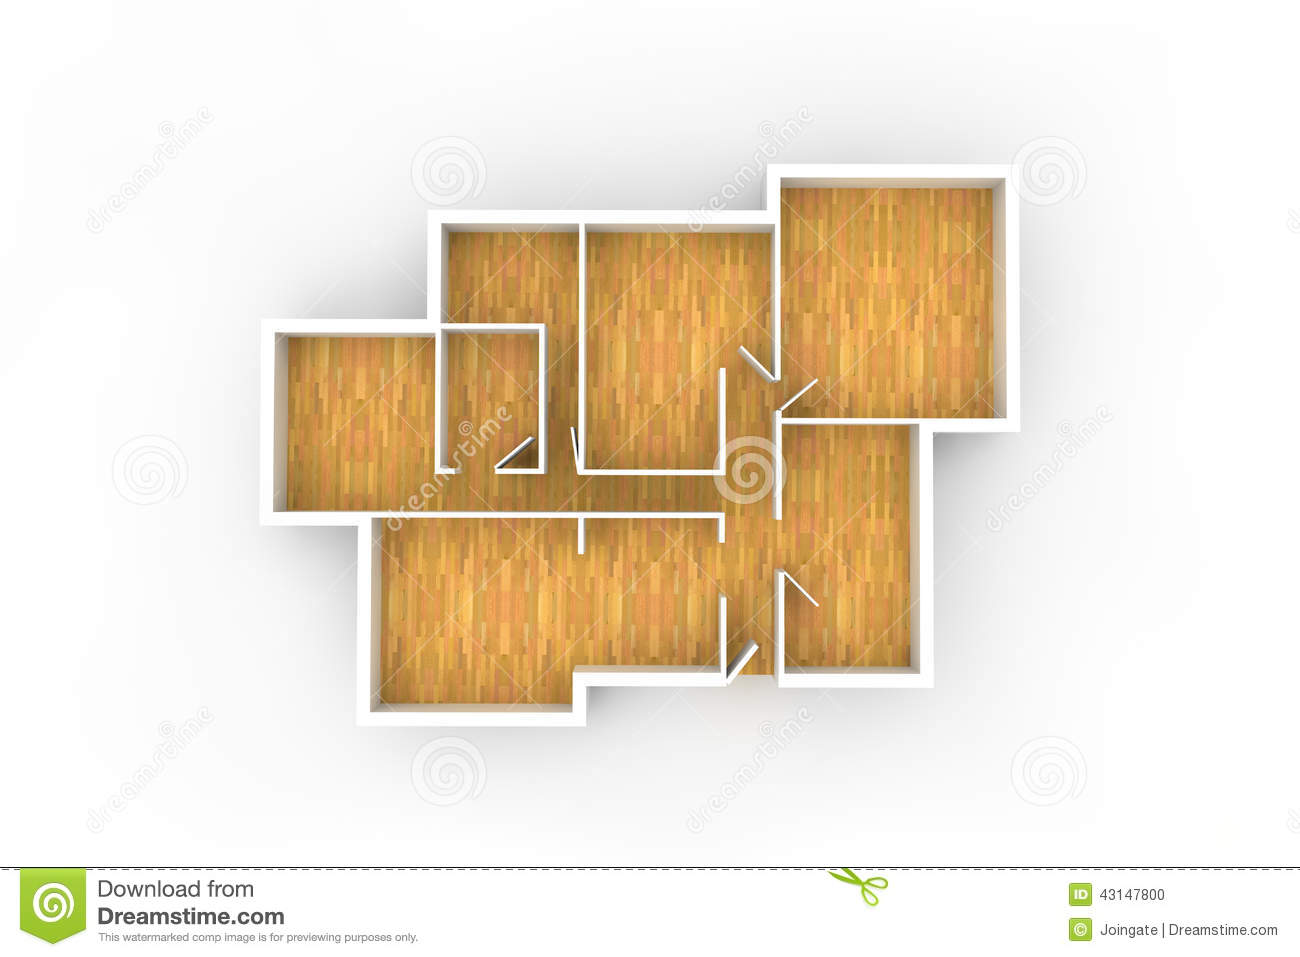 floorplan for typical house or office building with wooden floor